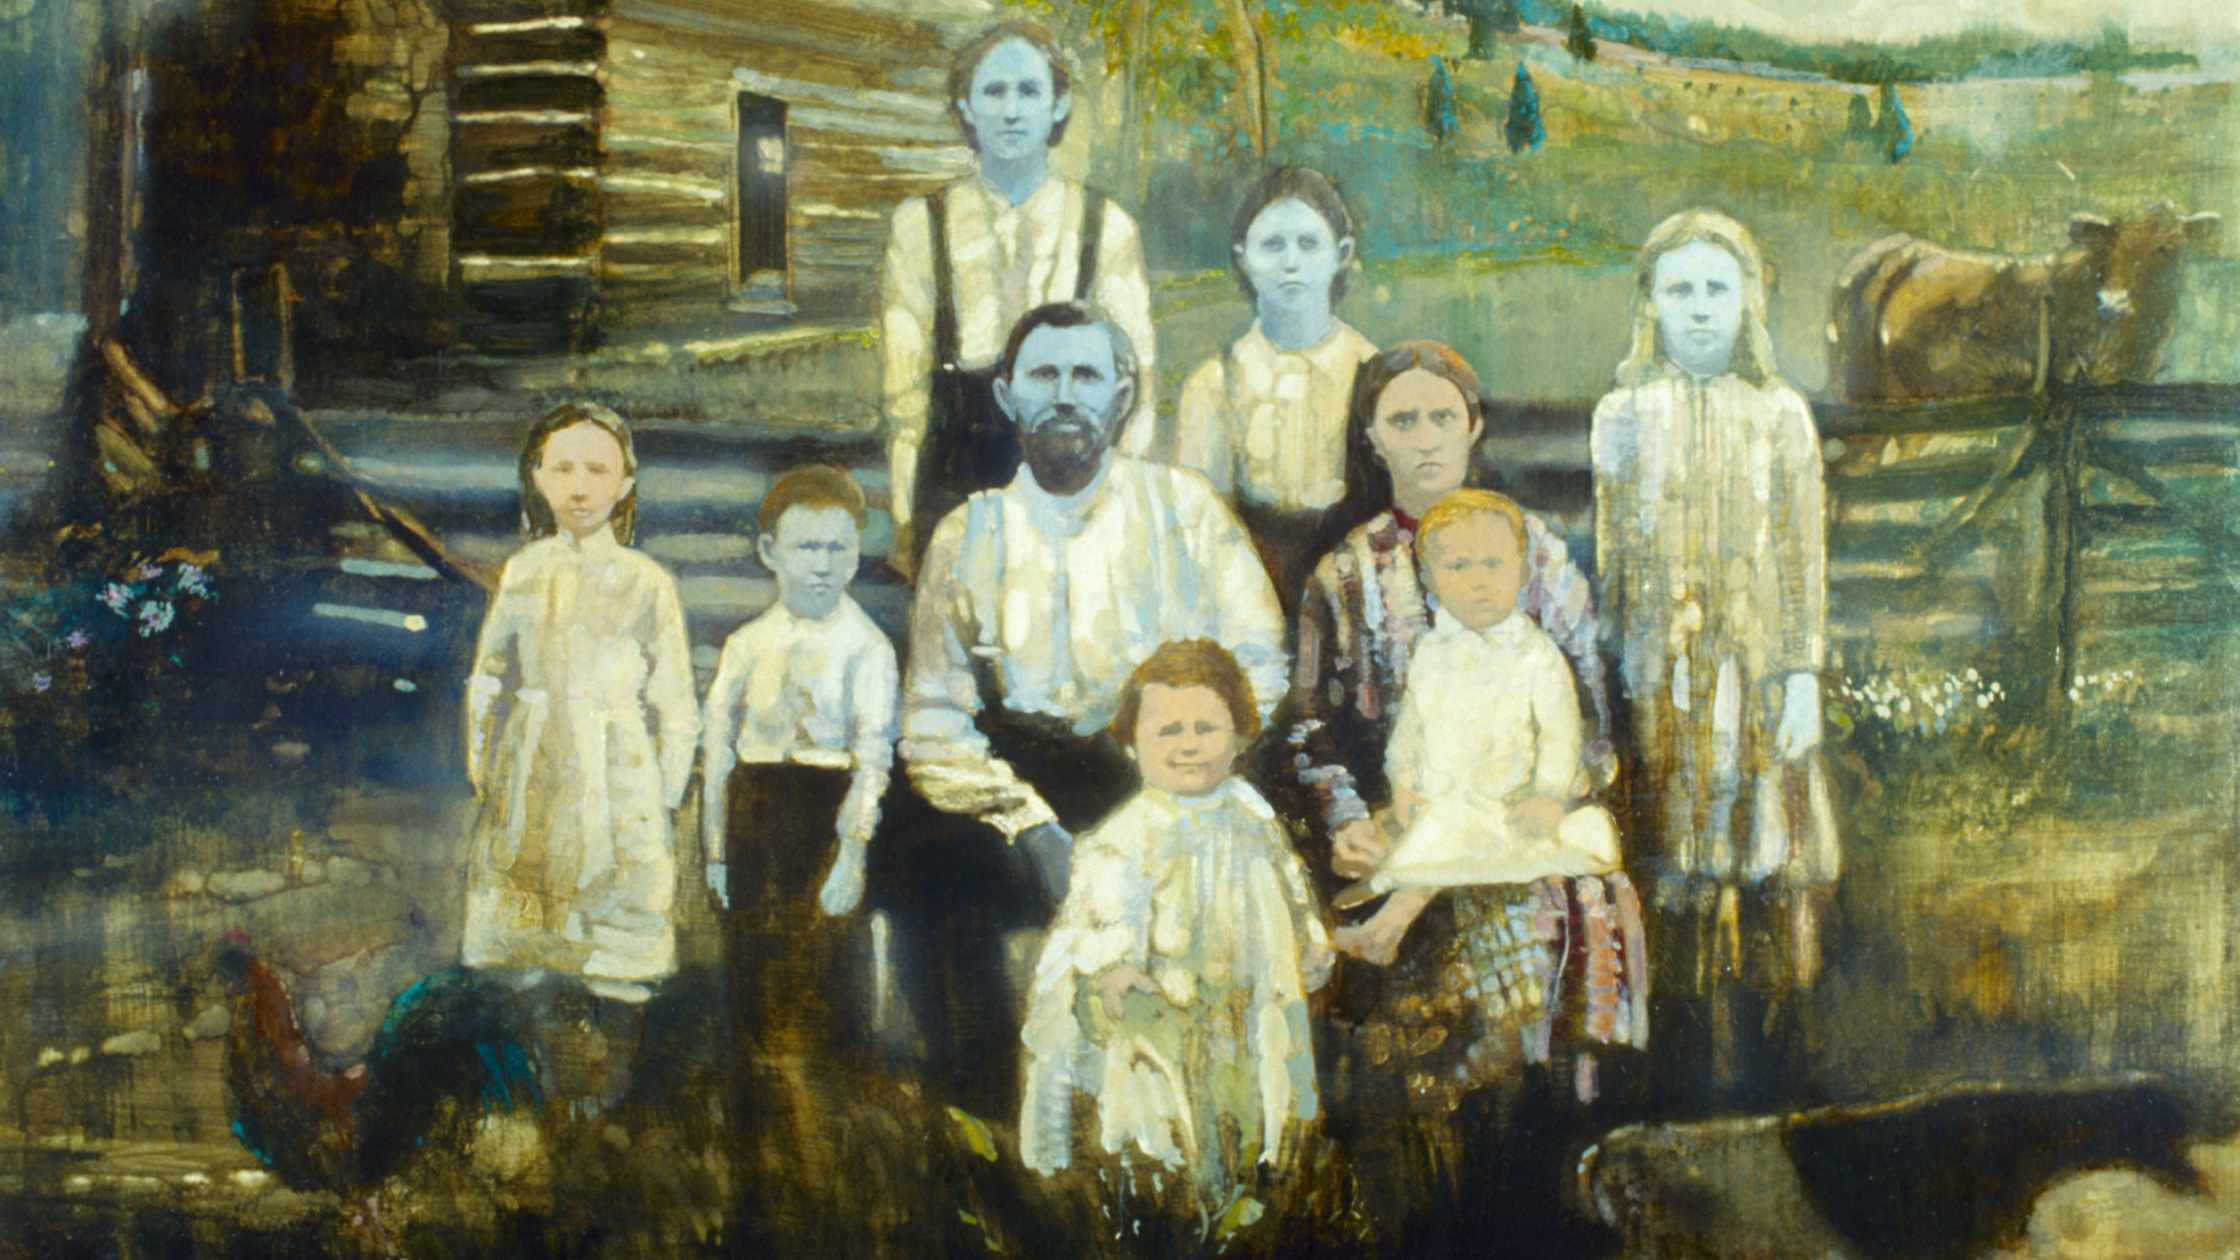 The strange story of the Blue People of Kentucky 2